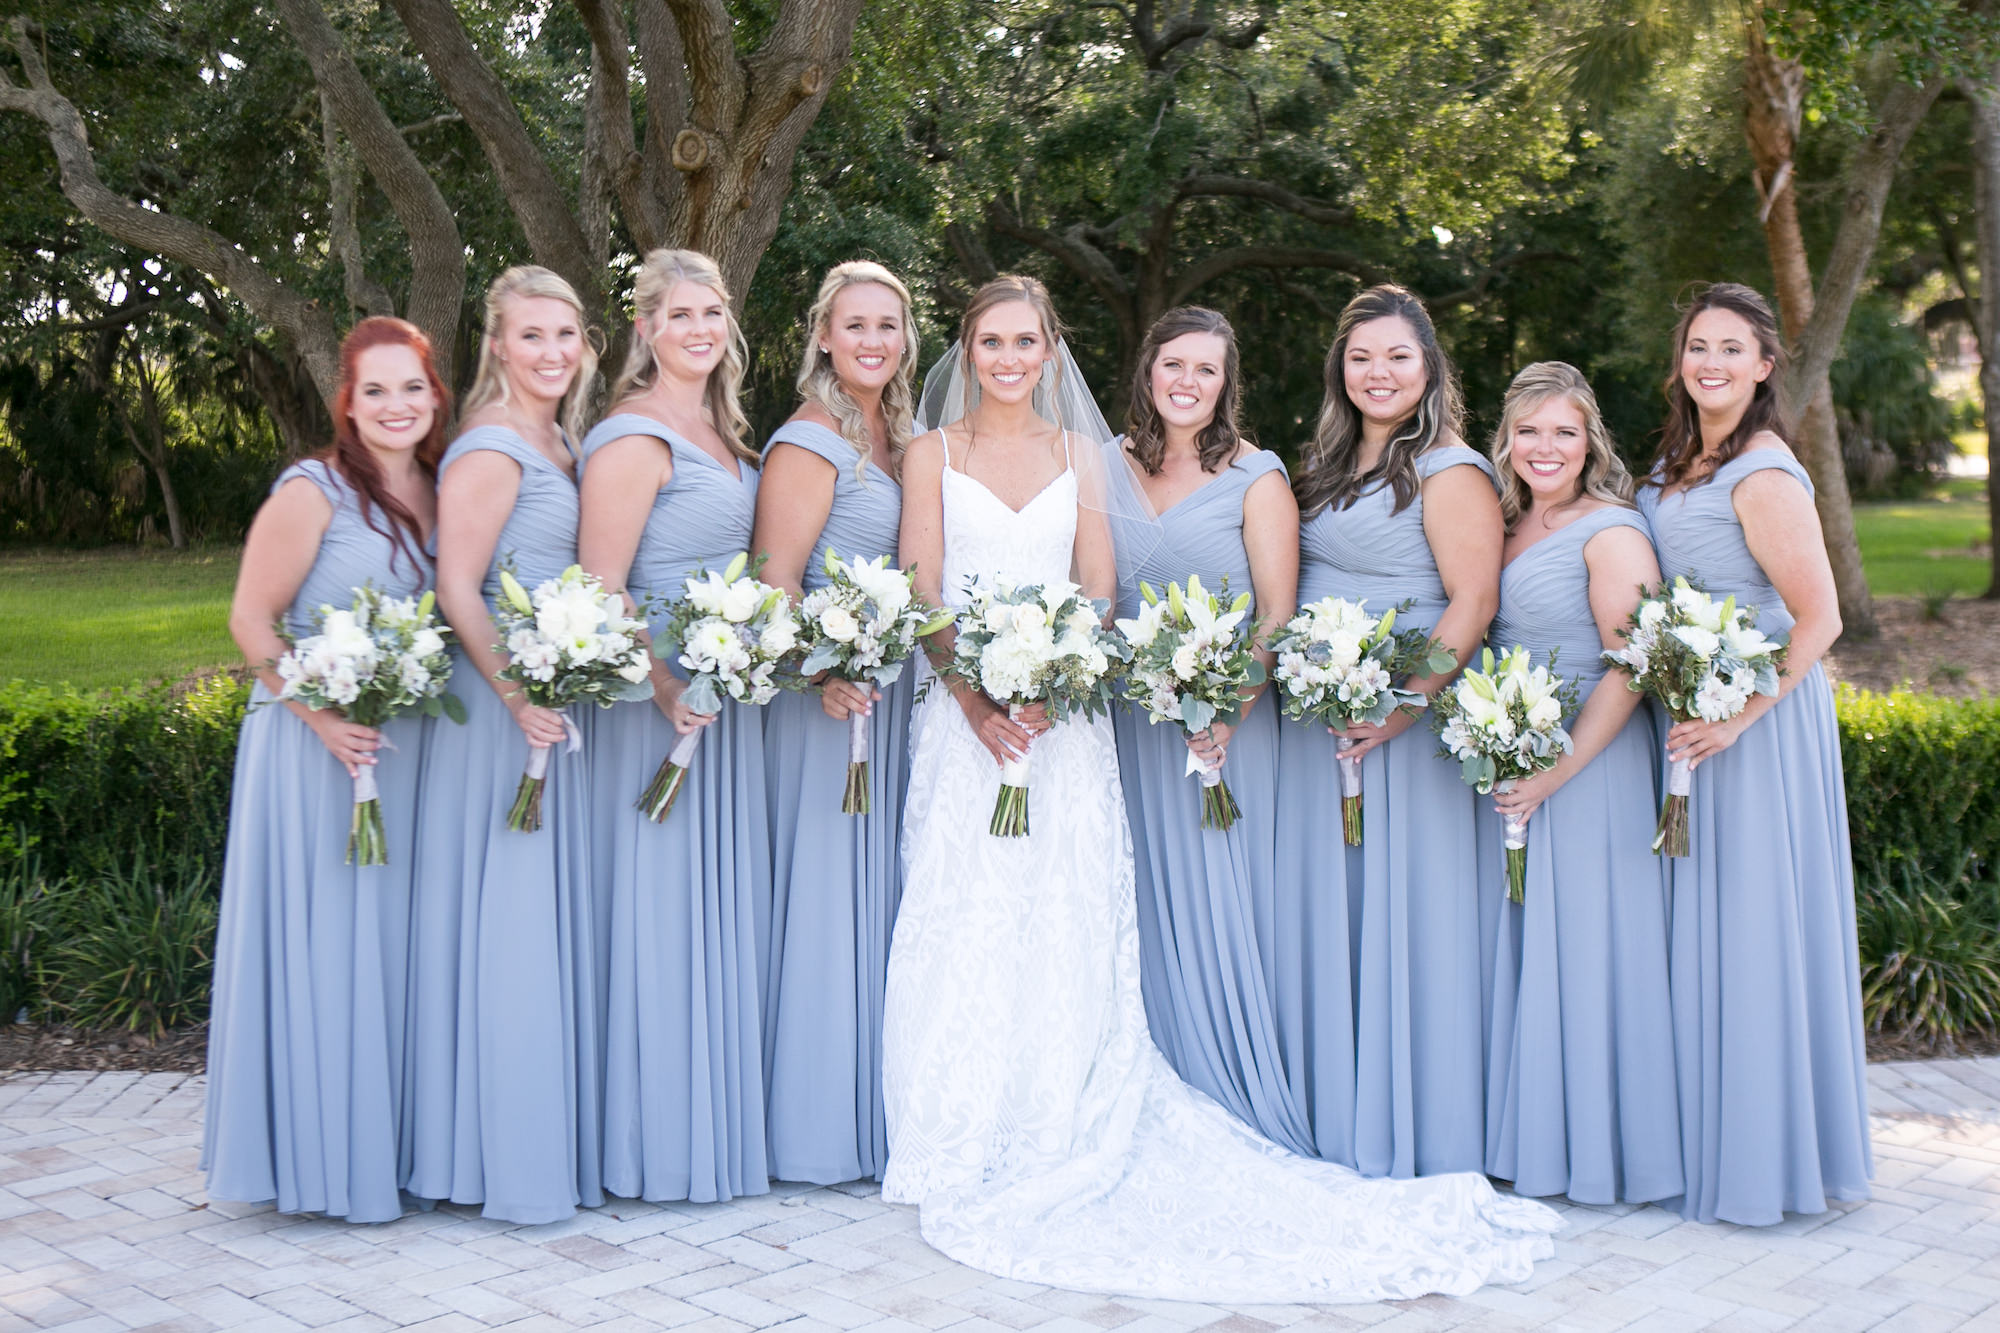 Bride in Romantic Lace Spaghetti Strap Sweetheart Neckline Wedding Dress Holding White and Eucalyptus Floral Bouquet, Bridesmaids in Matching Dusty Blue Dresses Wedding Portrait   Tampa Bay Wedding Photographer Carrie Wildes Photography   Wedding Planner Love Lee Lane